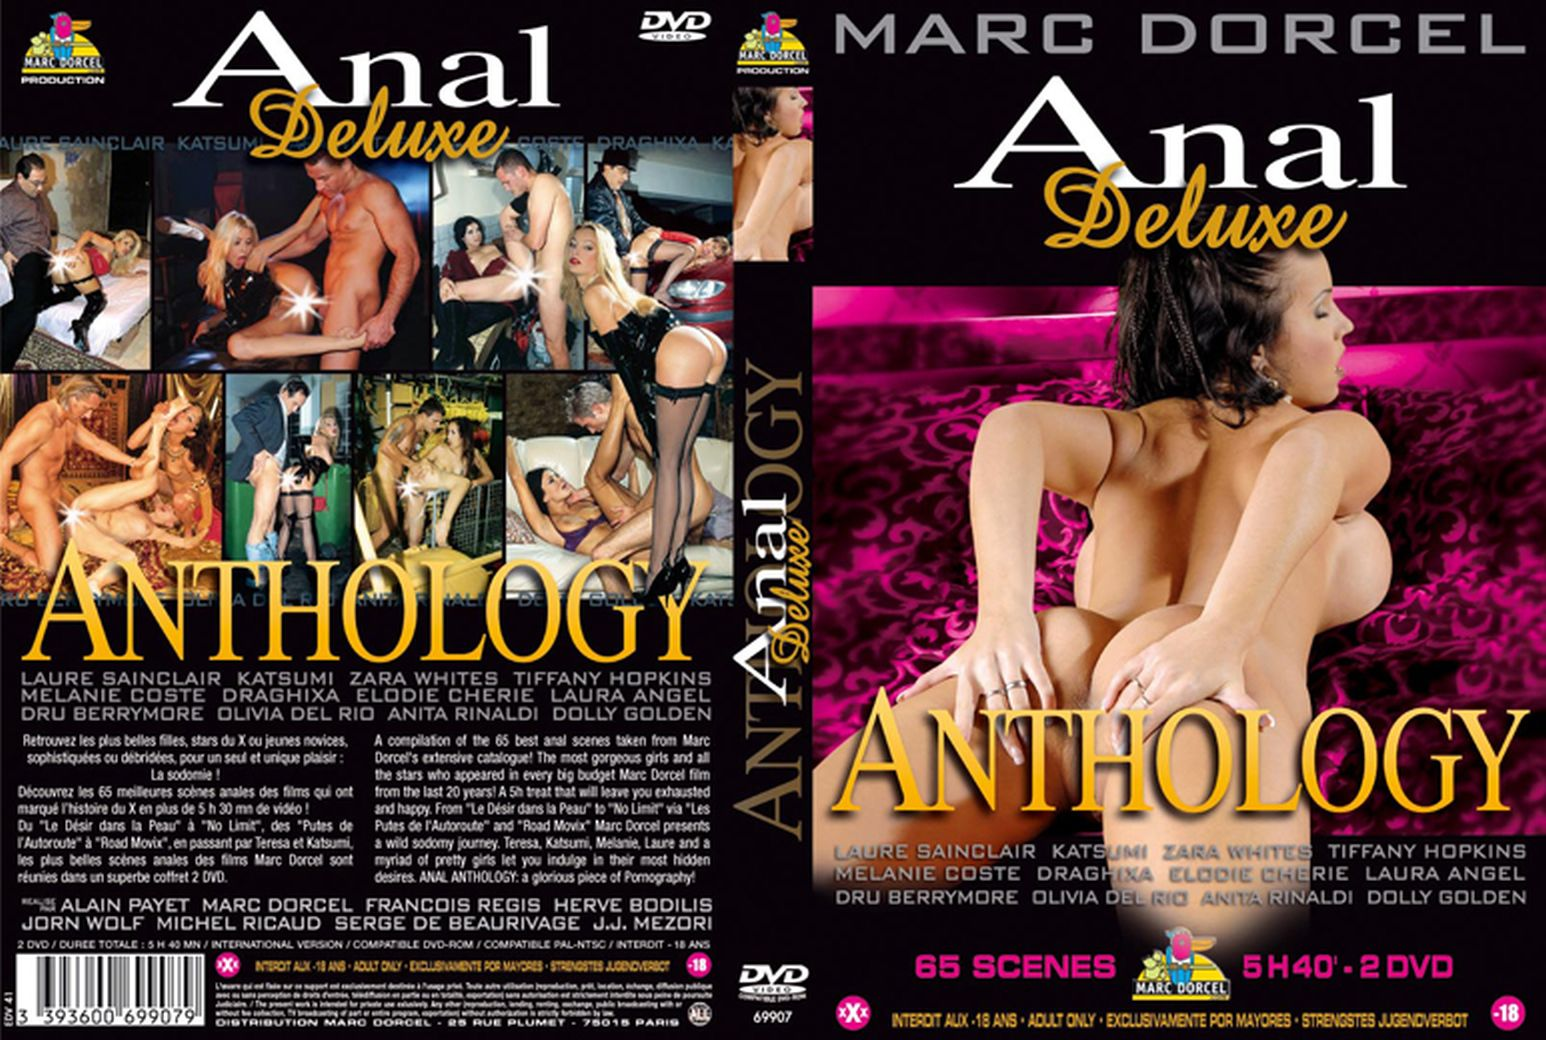 Anal Deluxe Anthology 100